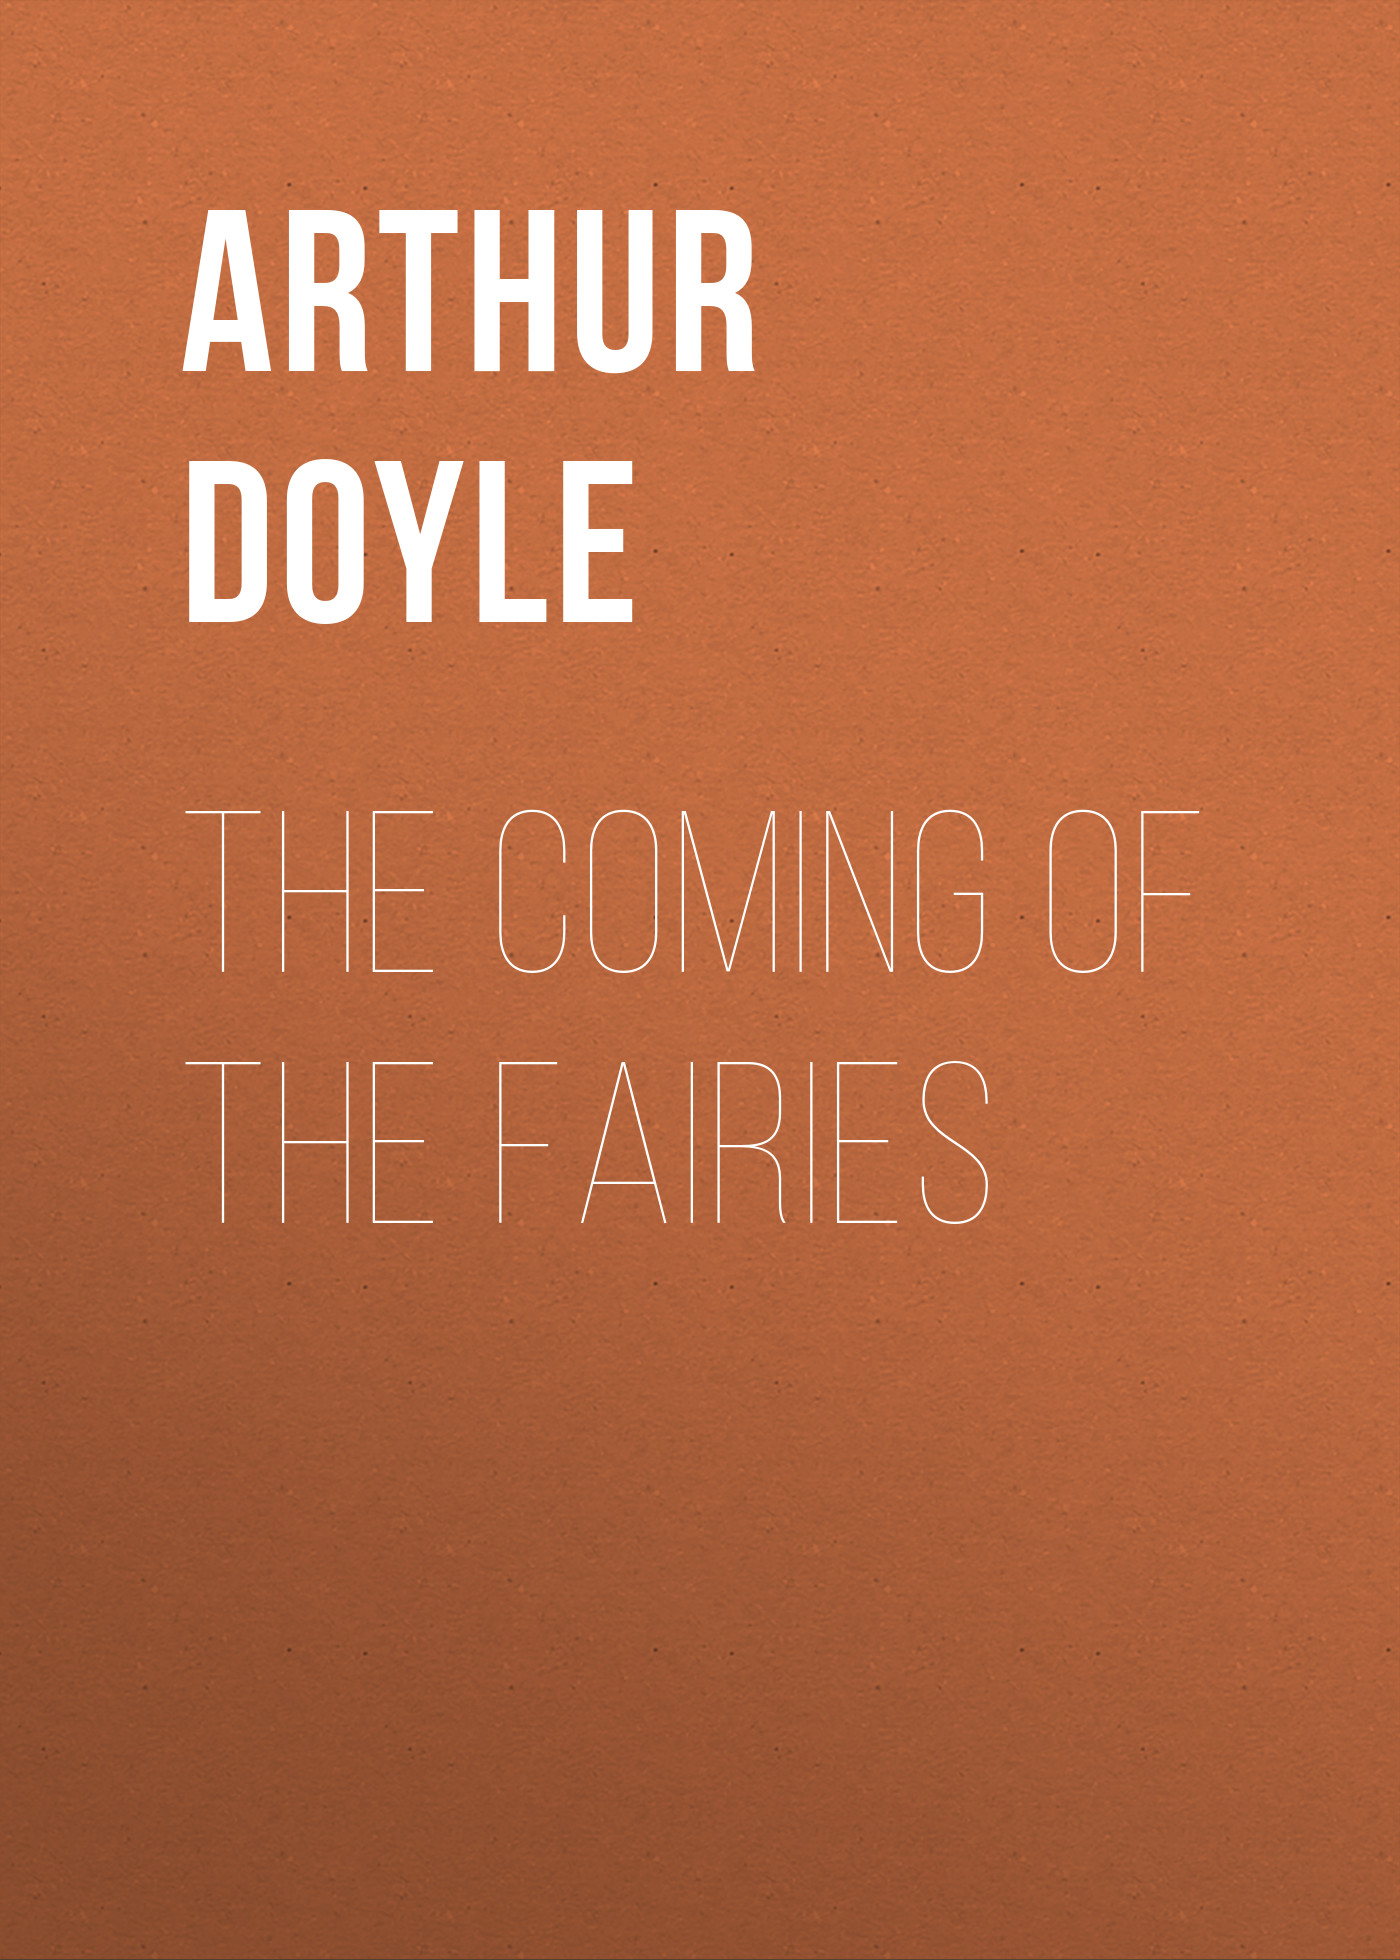 Doyle Arthur Conan The Coming of the Fairies arthur conan doyle the white company isbn 978 5 521 07143 2